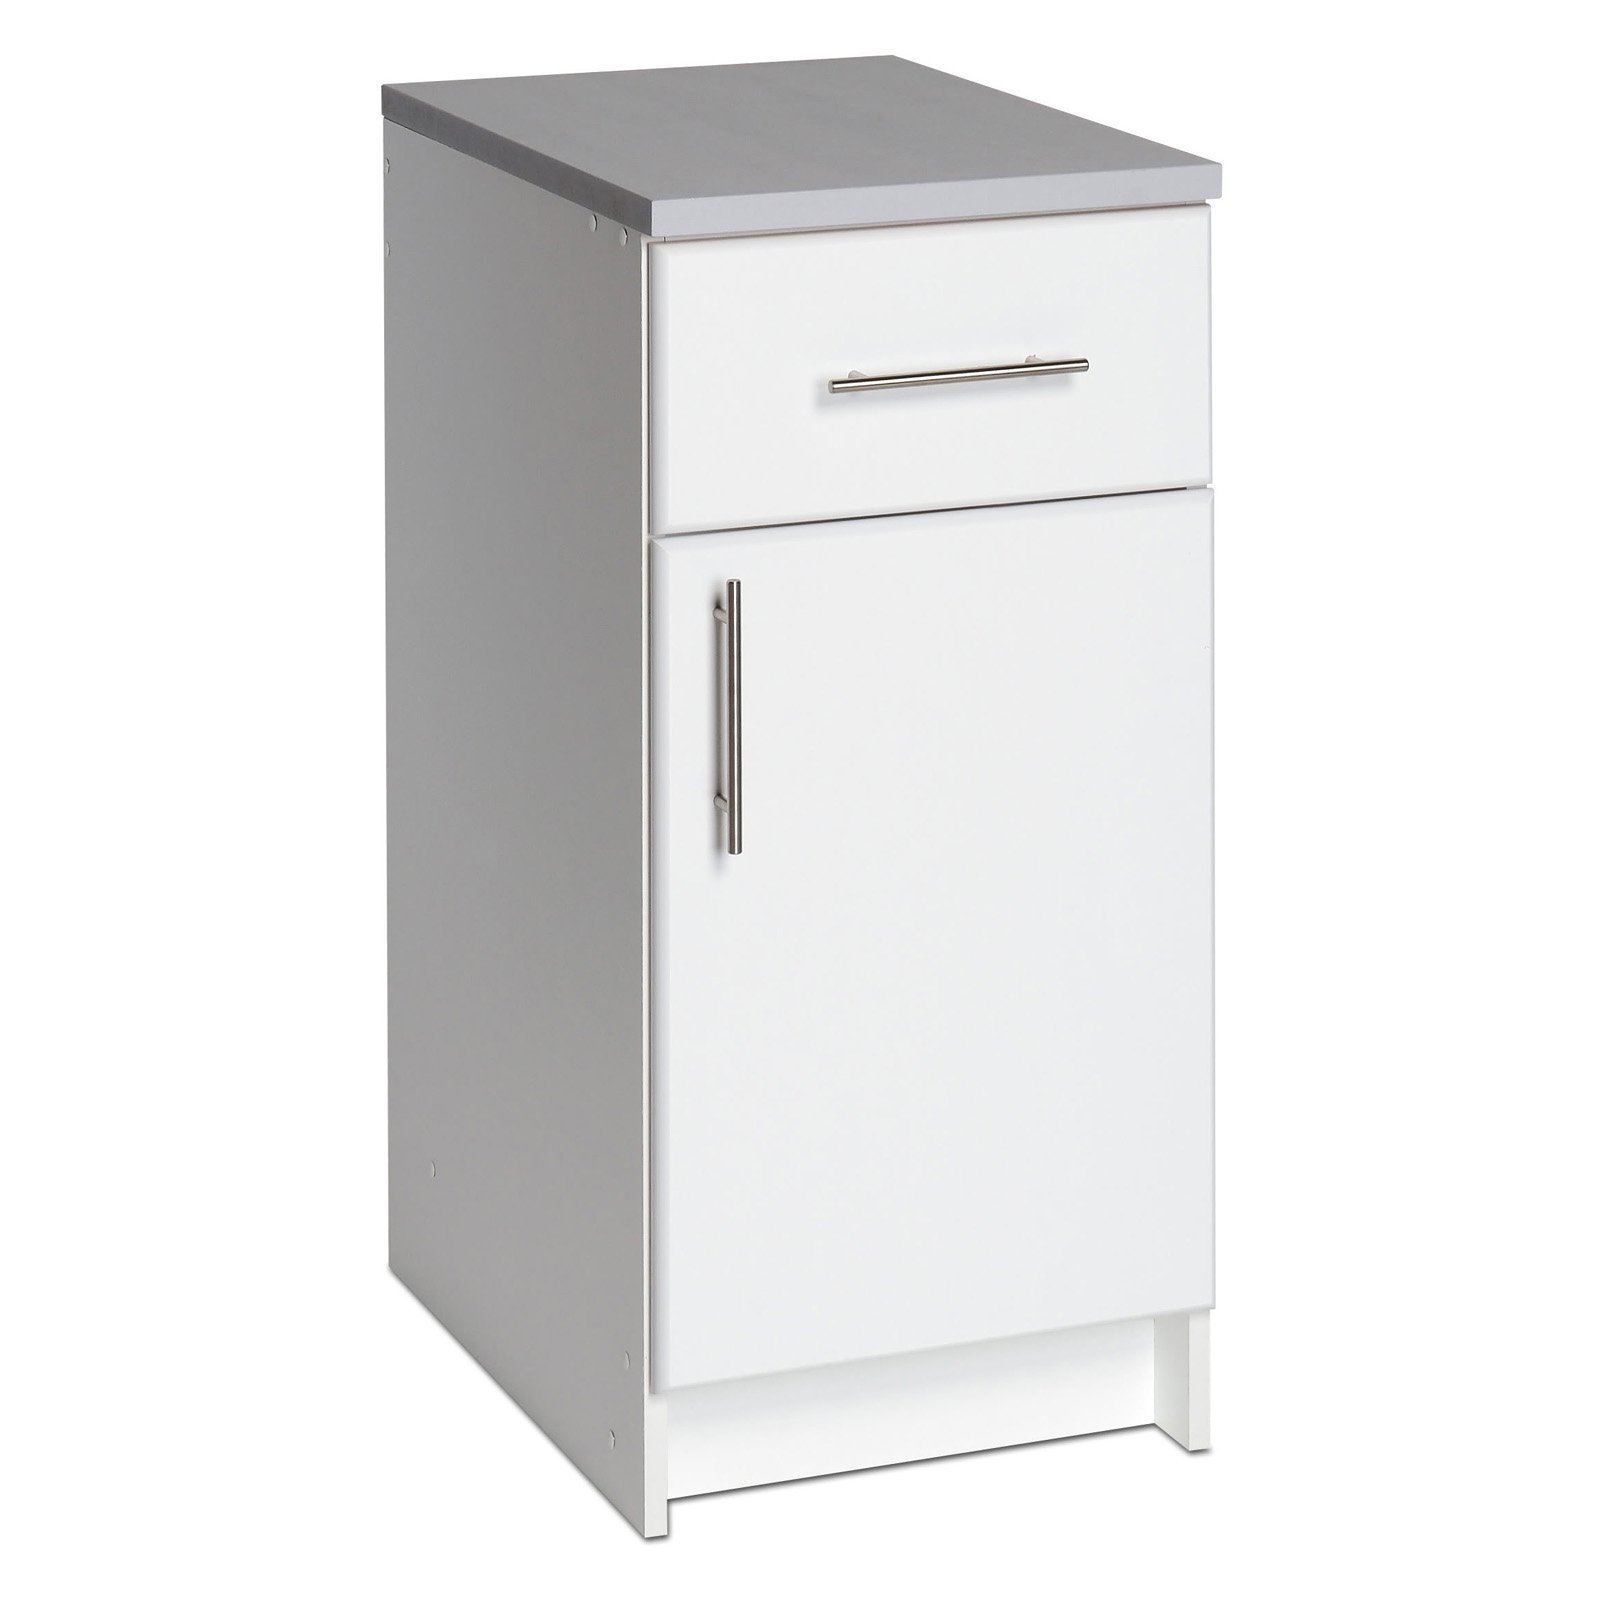 Prepac Elite 16 in. Single Door Utility Storage Base Cabinet - 36H in. (White) by Prepac